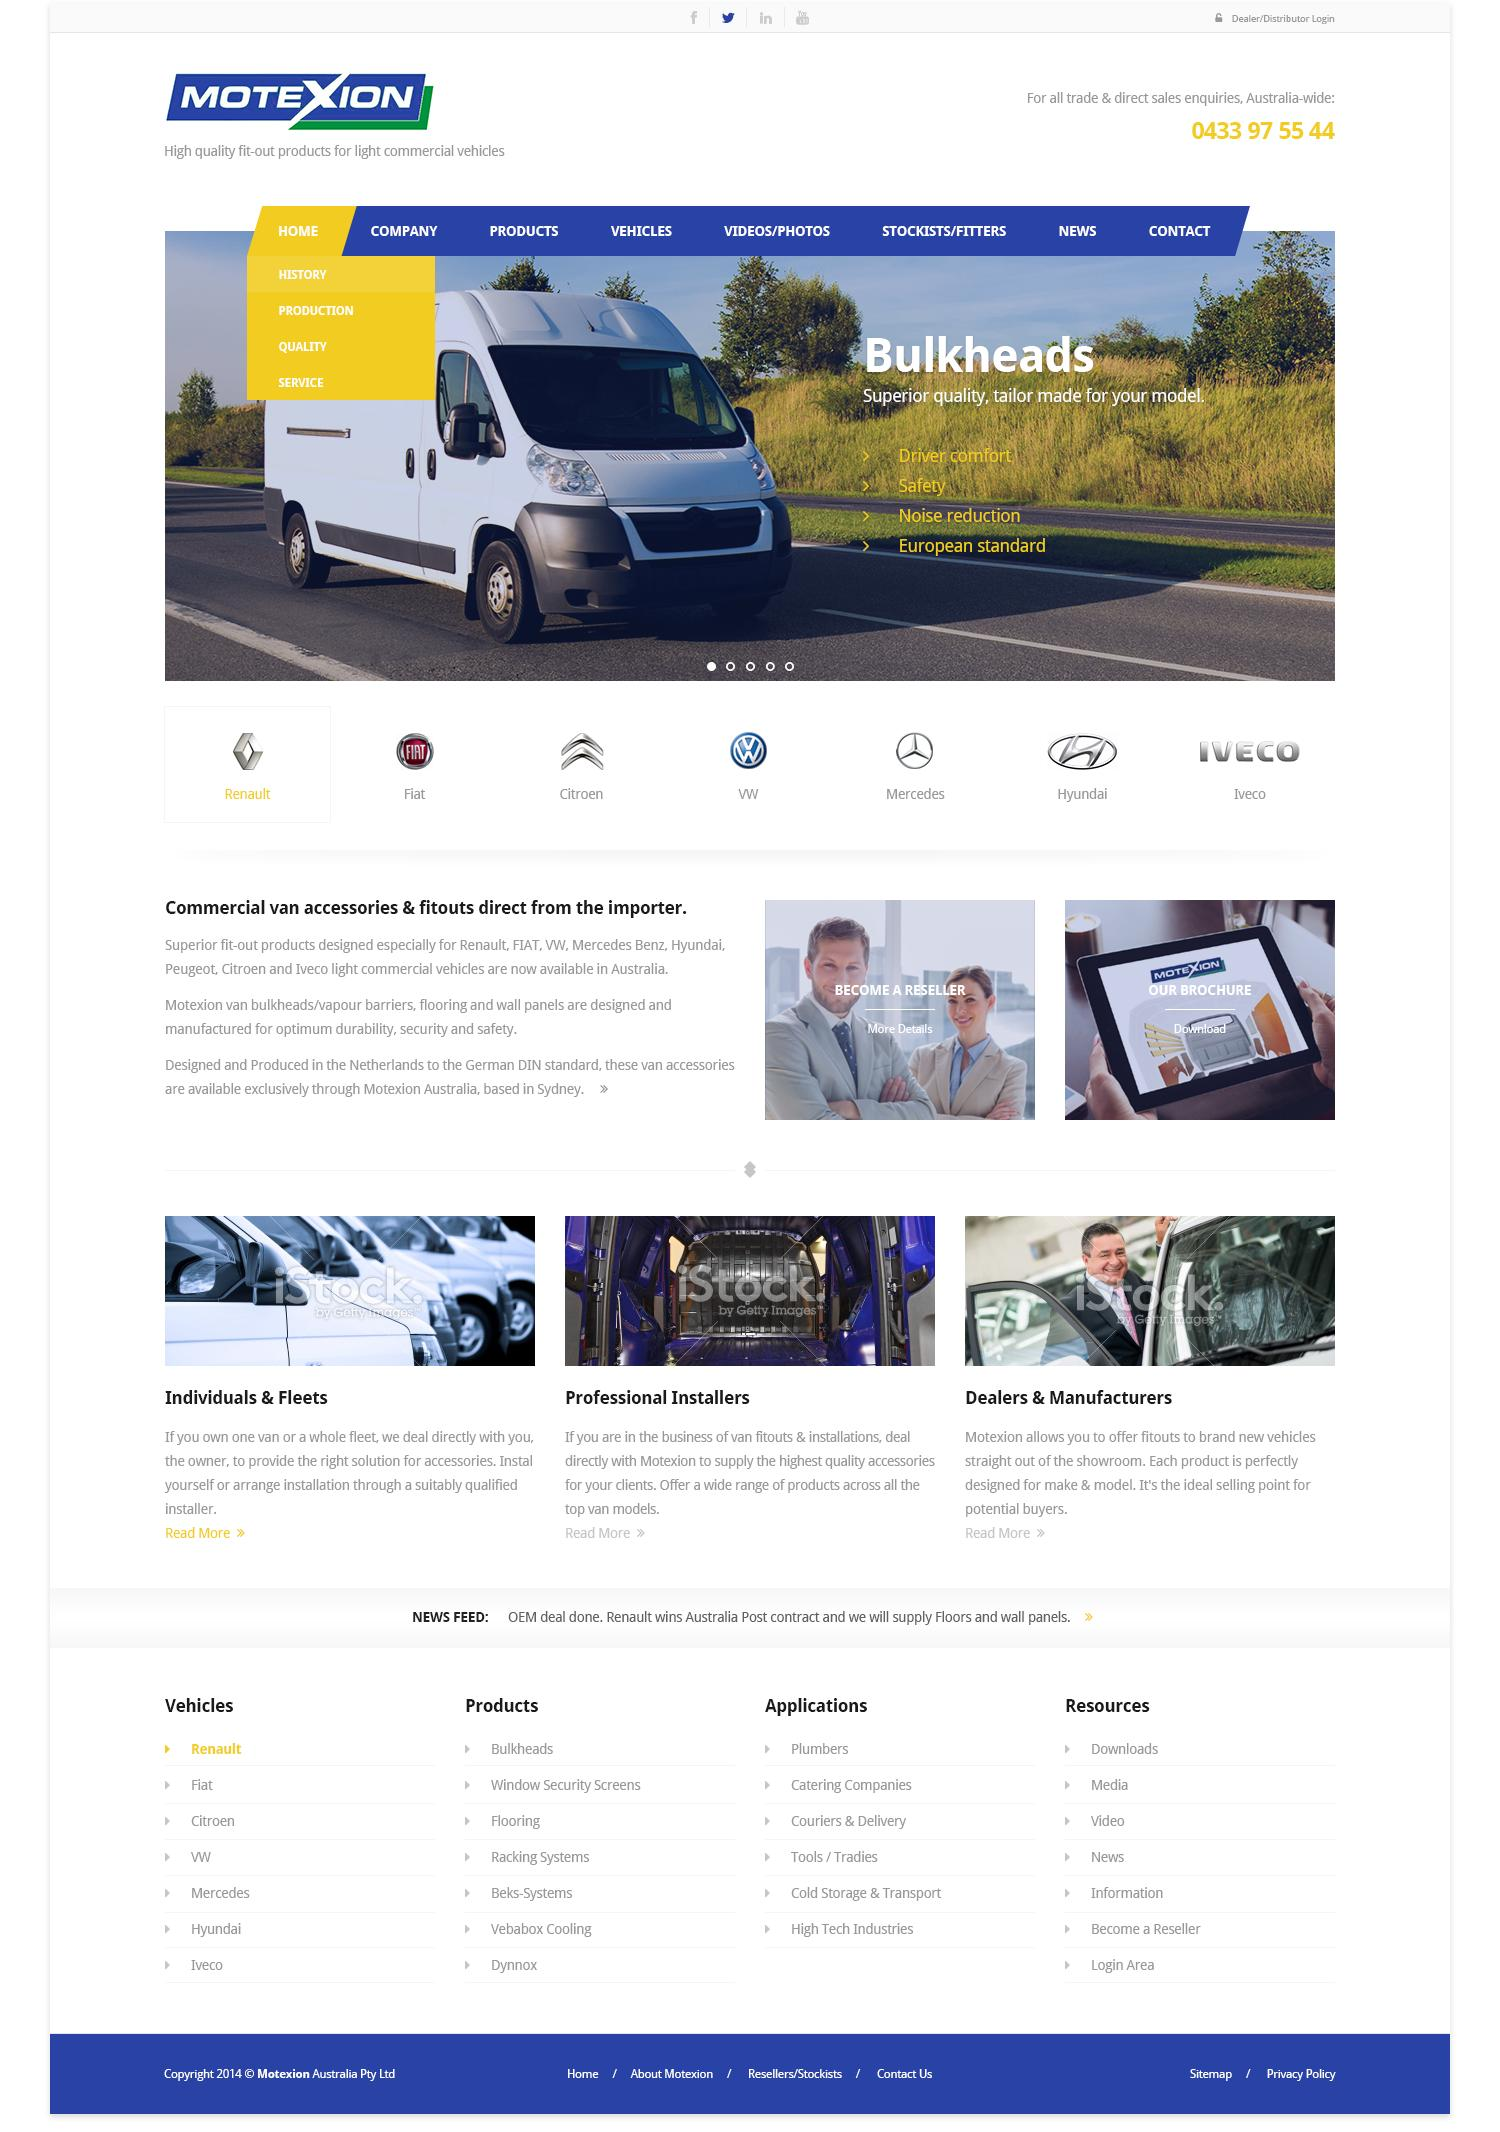 One Page Web Design / Redesign by wantdesign - 62258